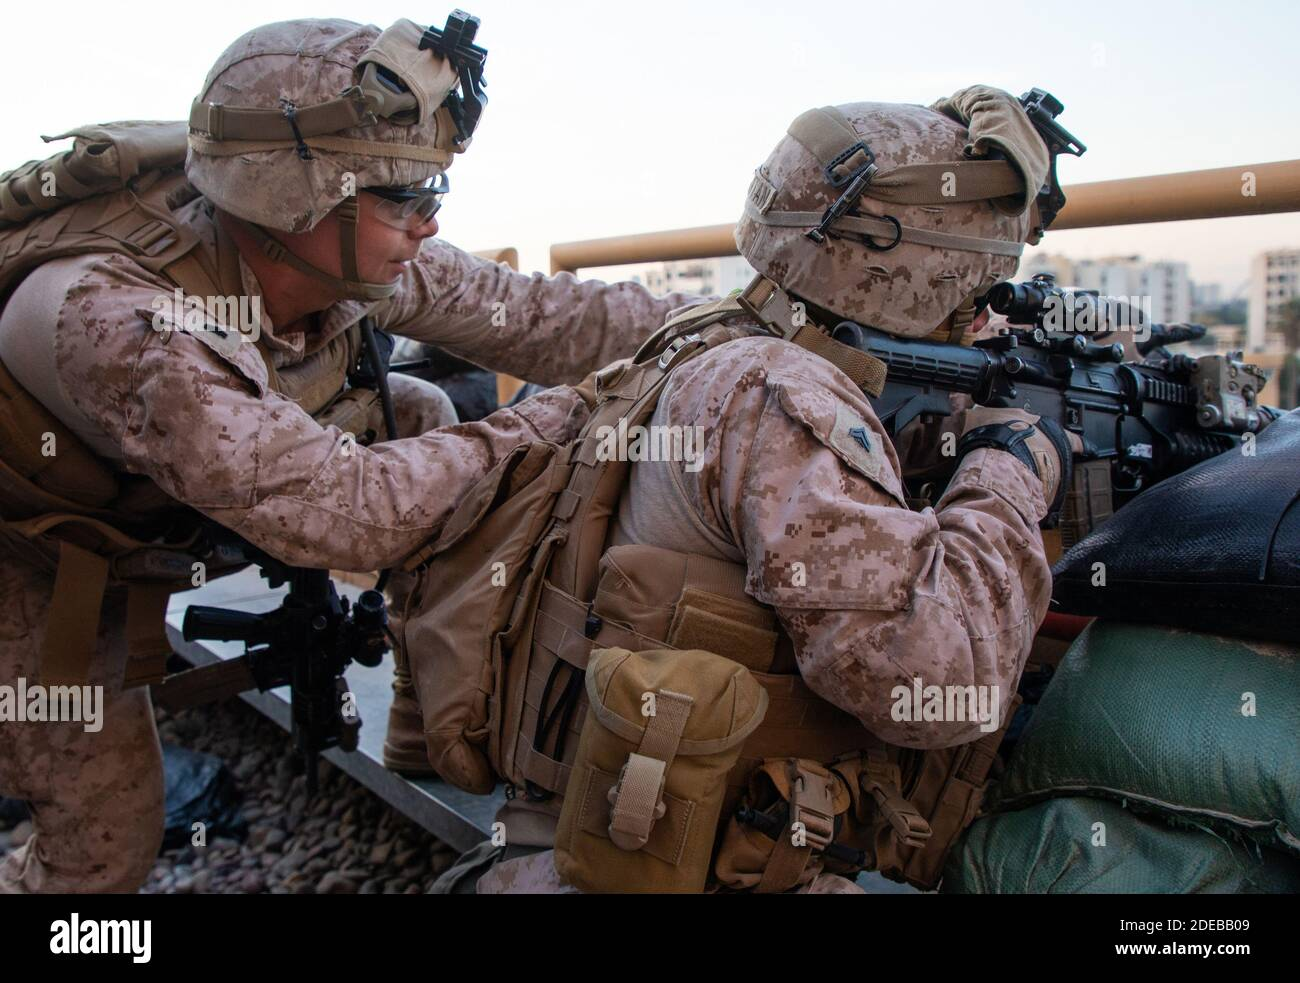 Baghdad, Iraq. 29th Nov, 2020. U.S. Marines with 2nd Battalion, 7th Marines, assigned to the Special Purpose Marine Air-Ground Task Force-Crisis Response-Central Command (SPMAGTF-CR-CC) 19.2, reinforce the Baghdad Embassy Compound in Iraq, on January 1, 2020. Dozens of angry Iraqi Shiite militia supporters broke into the U.S. Embassy compound in Baghdad on Tuesday, December 31, 2019, after smashing a main door and setting fire to a reception area. Photo by Sgt. Kyle C. Talbot/U.S. Marine Corps/UPI Credit: UPI/Alamy Live News Stock Photo